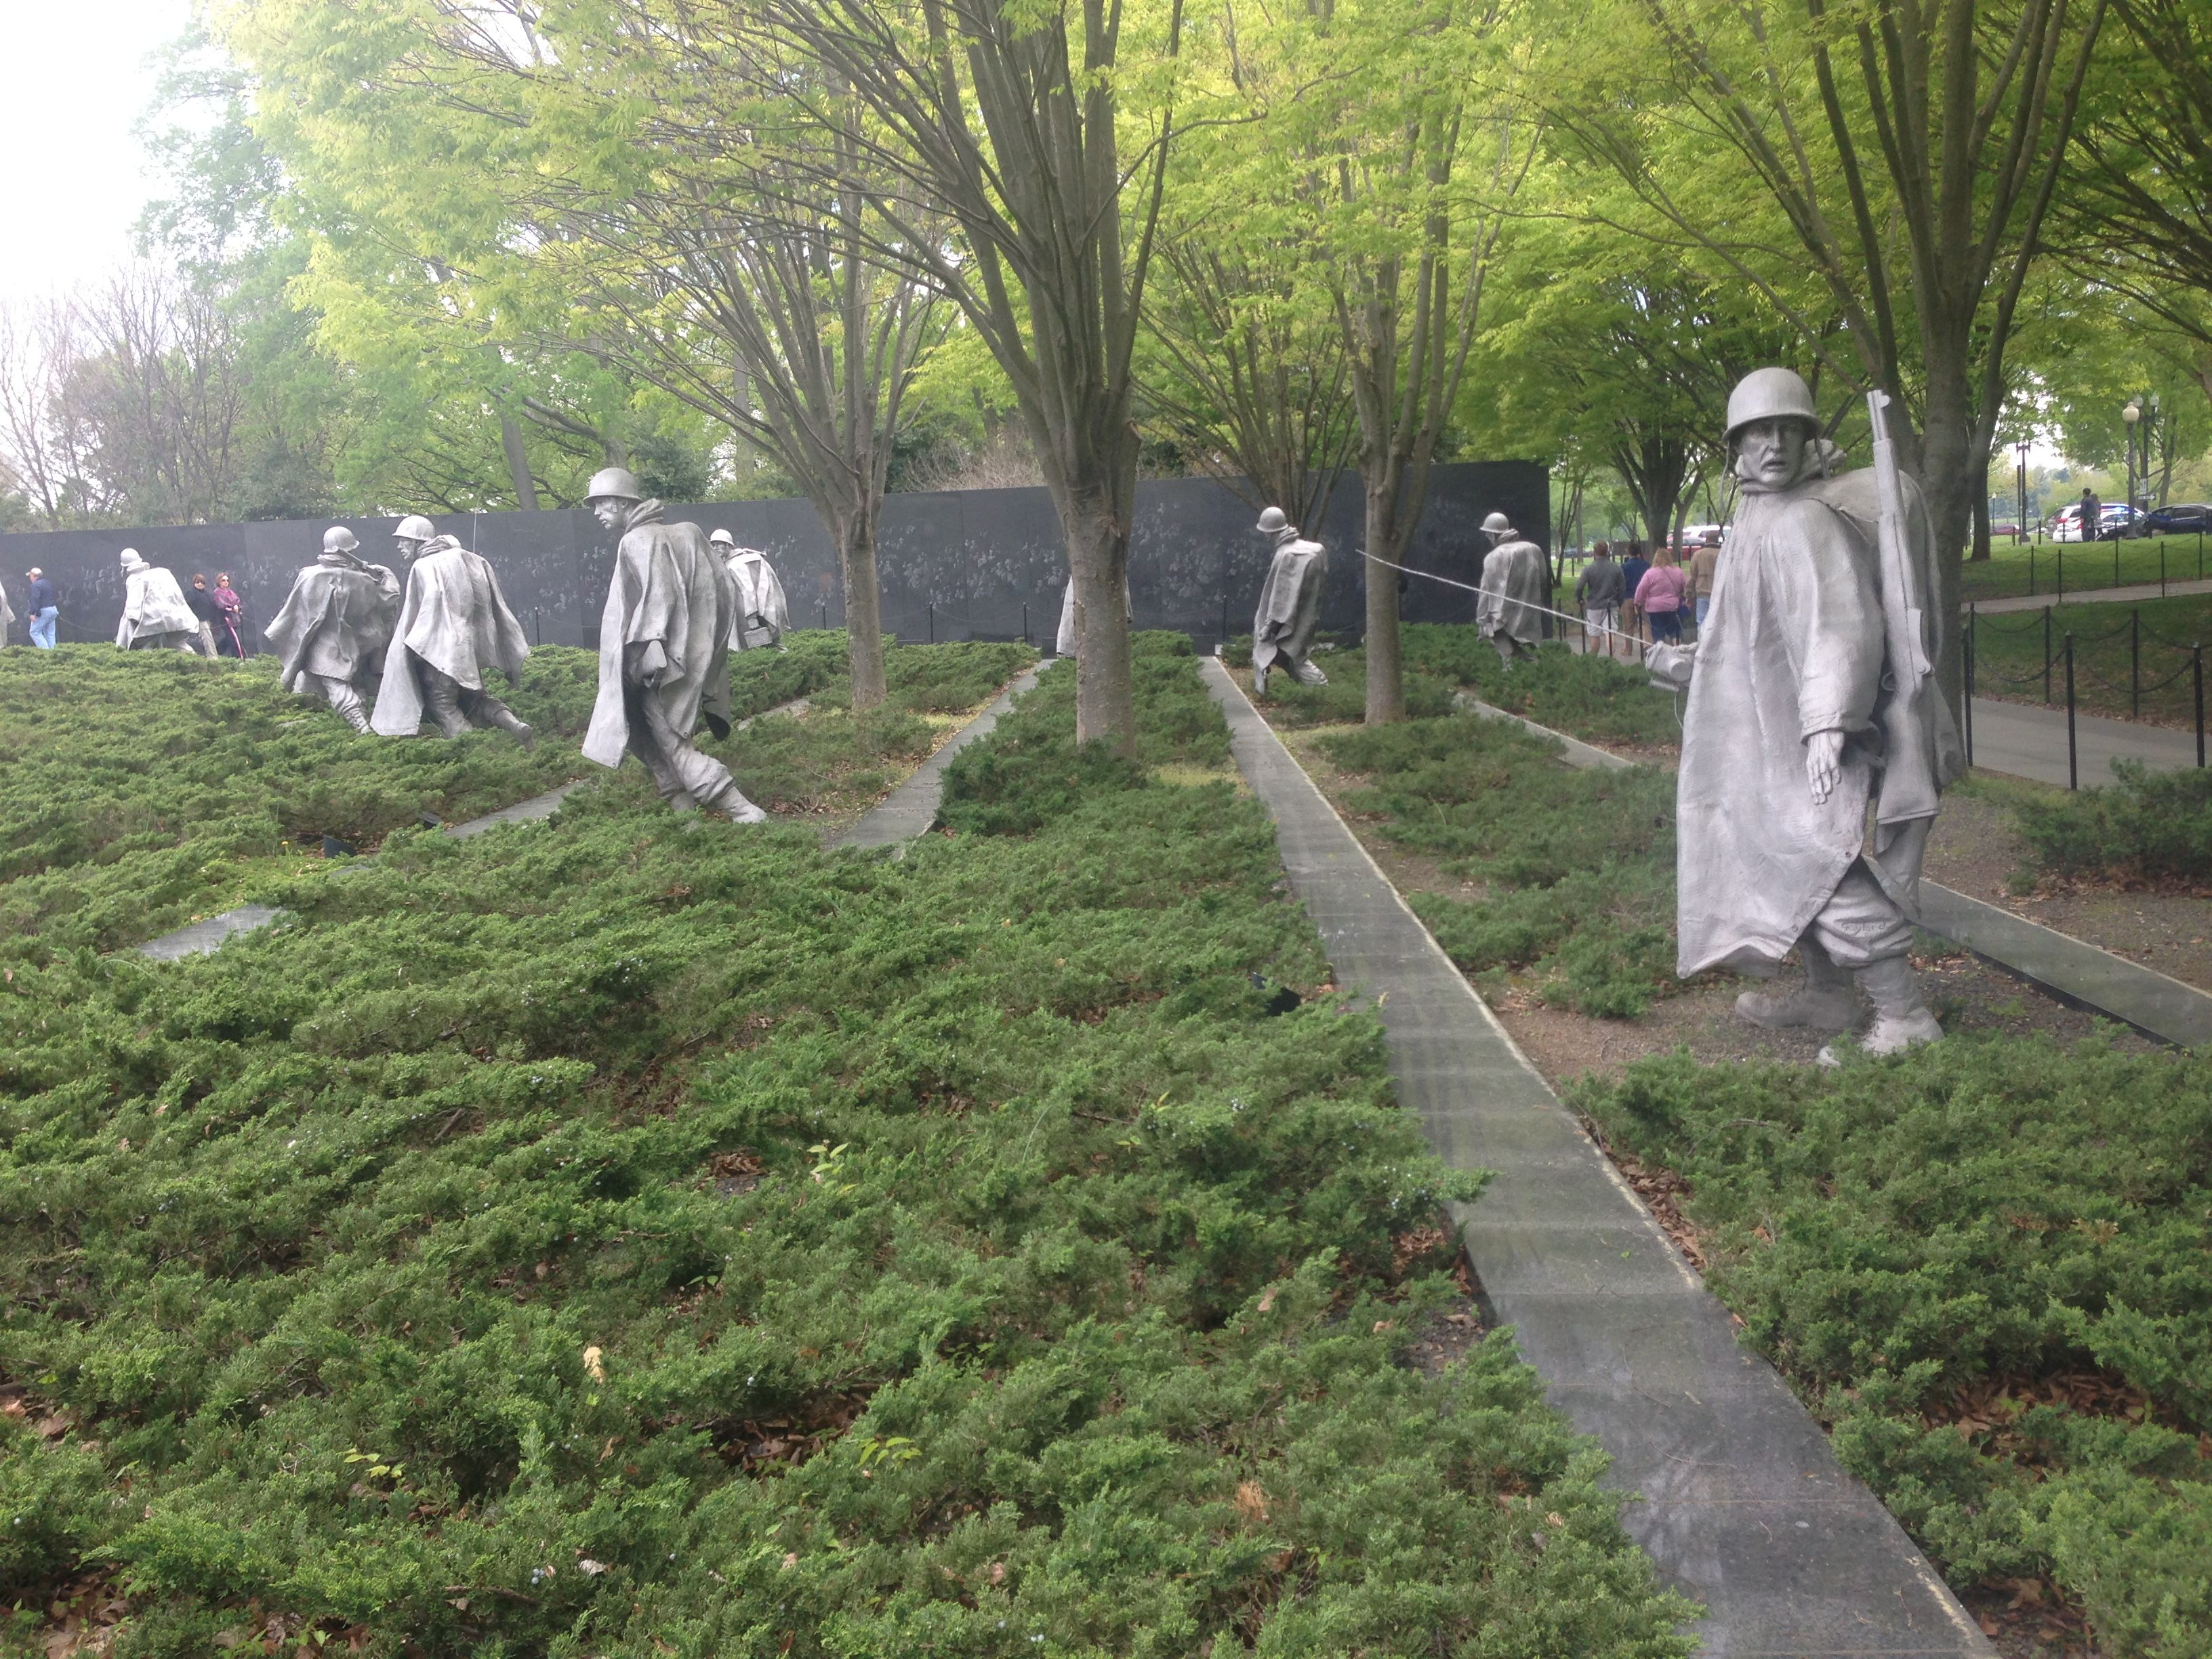 At Korean Memorial There Are 19 Statues In This Picture But There